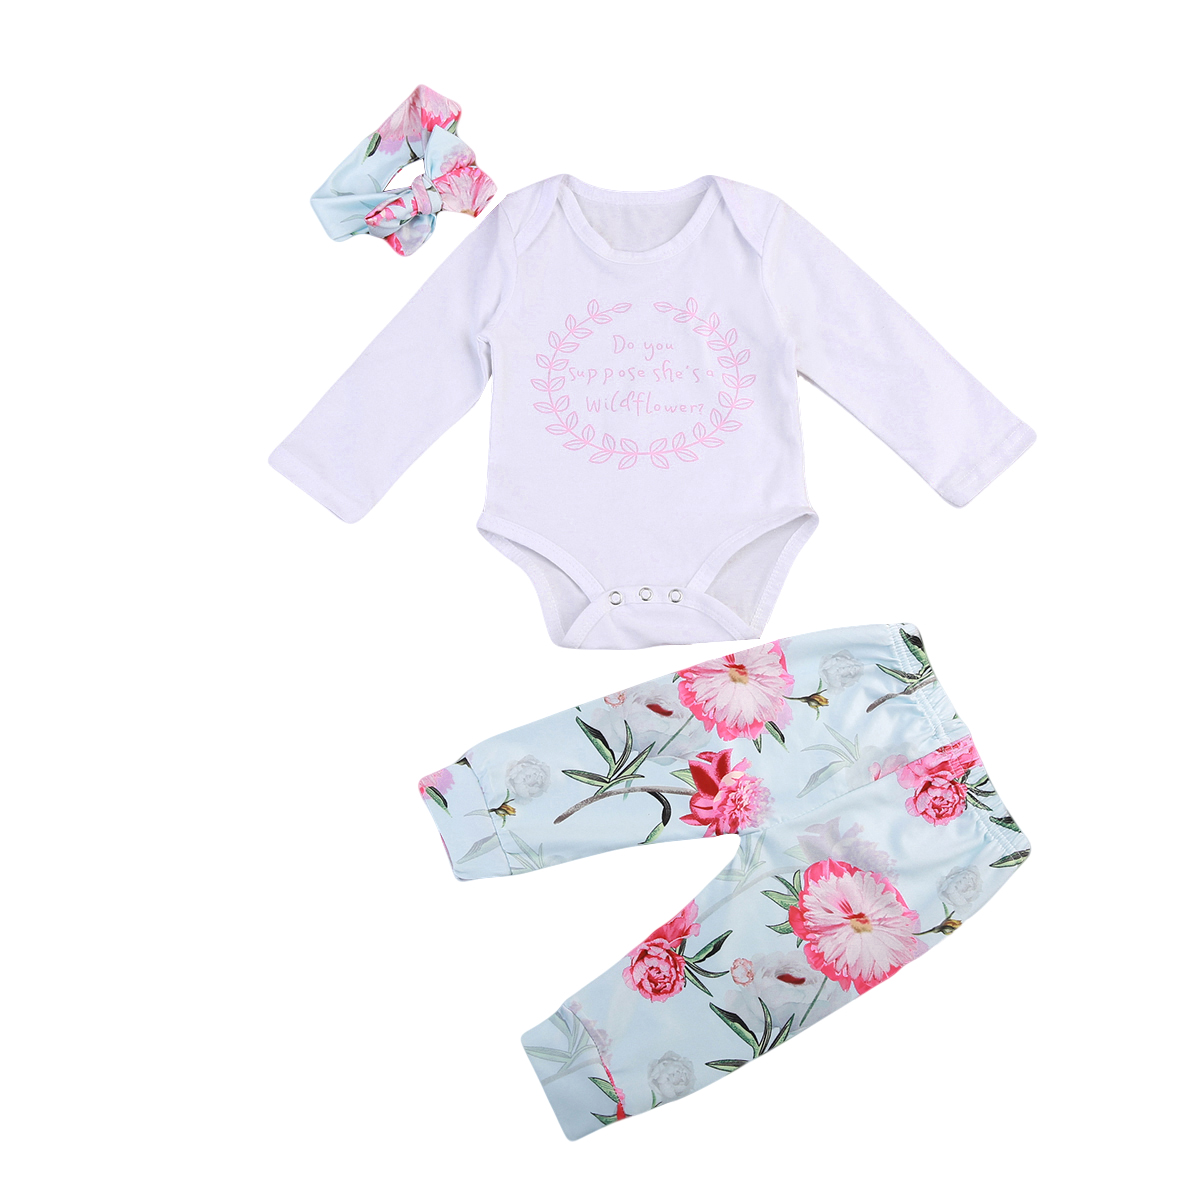 Newborn Infant Baby Girl Clothes Jumpsuit Long Sleeve Romper Floral Pants Headband Outfit Clothes Set